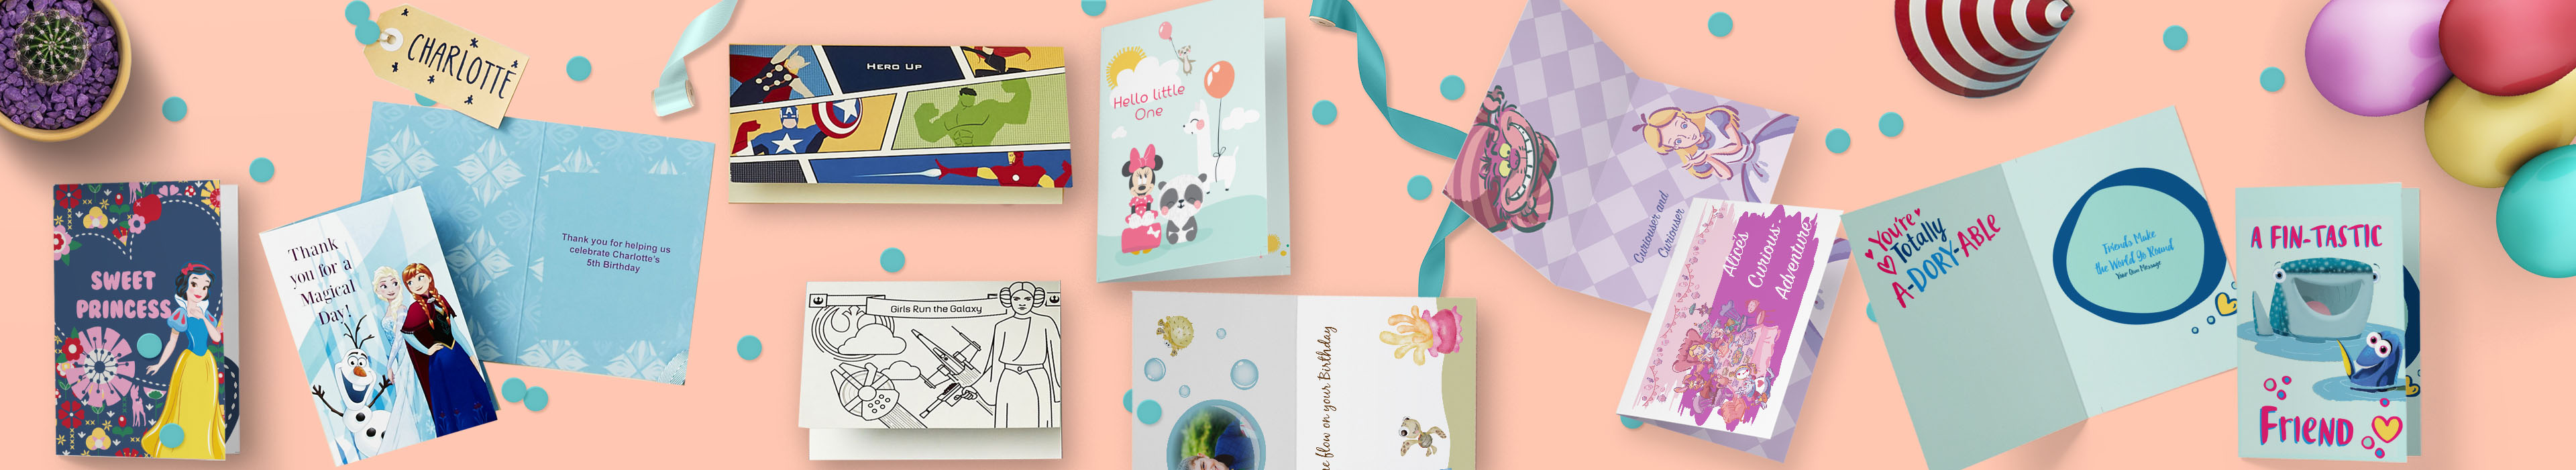 Officeworks print and copy disney app browse designs for greeting cards m4hsunfo